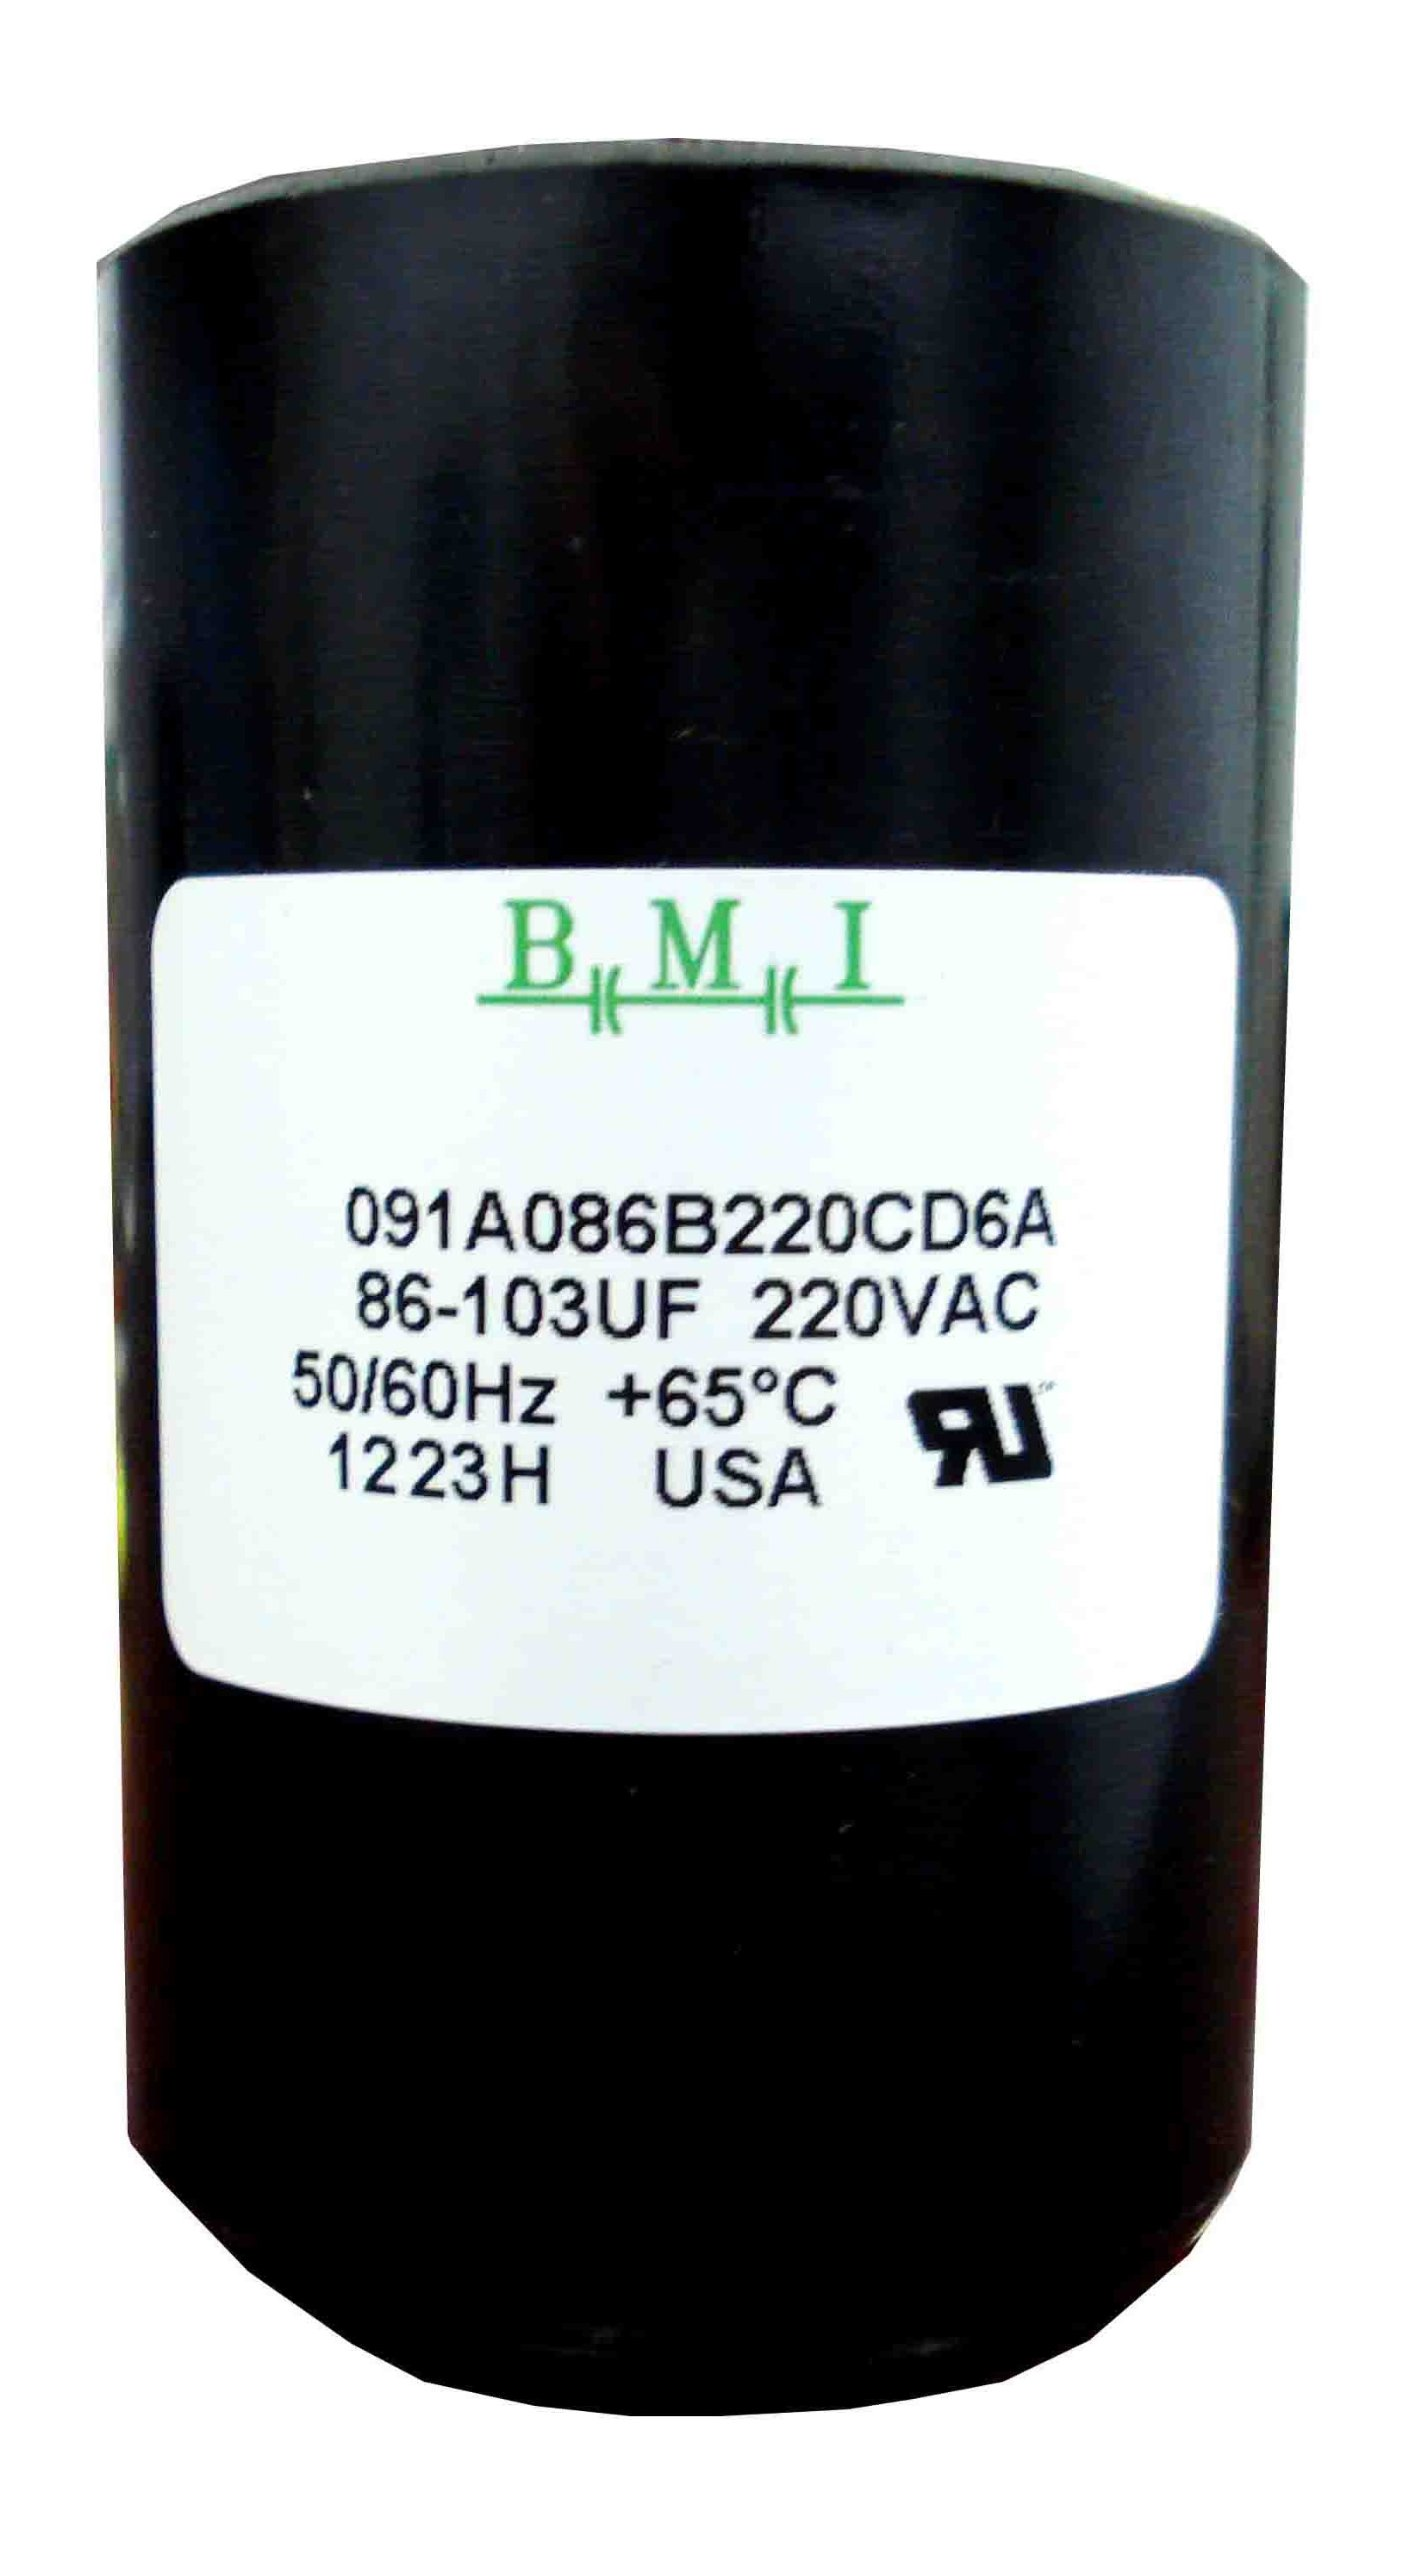 86-103 MFD (uF) 3/4 and 1 HP Well Pump Control Box Motor Start Capacitor 275464118 for Franklin 2801074915, CRC 2824085015 . New